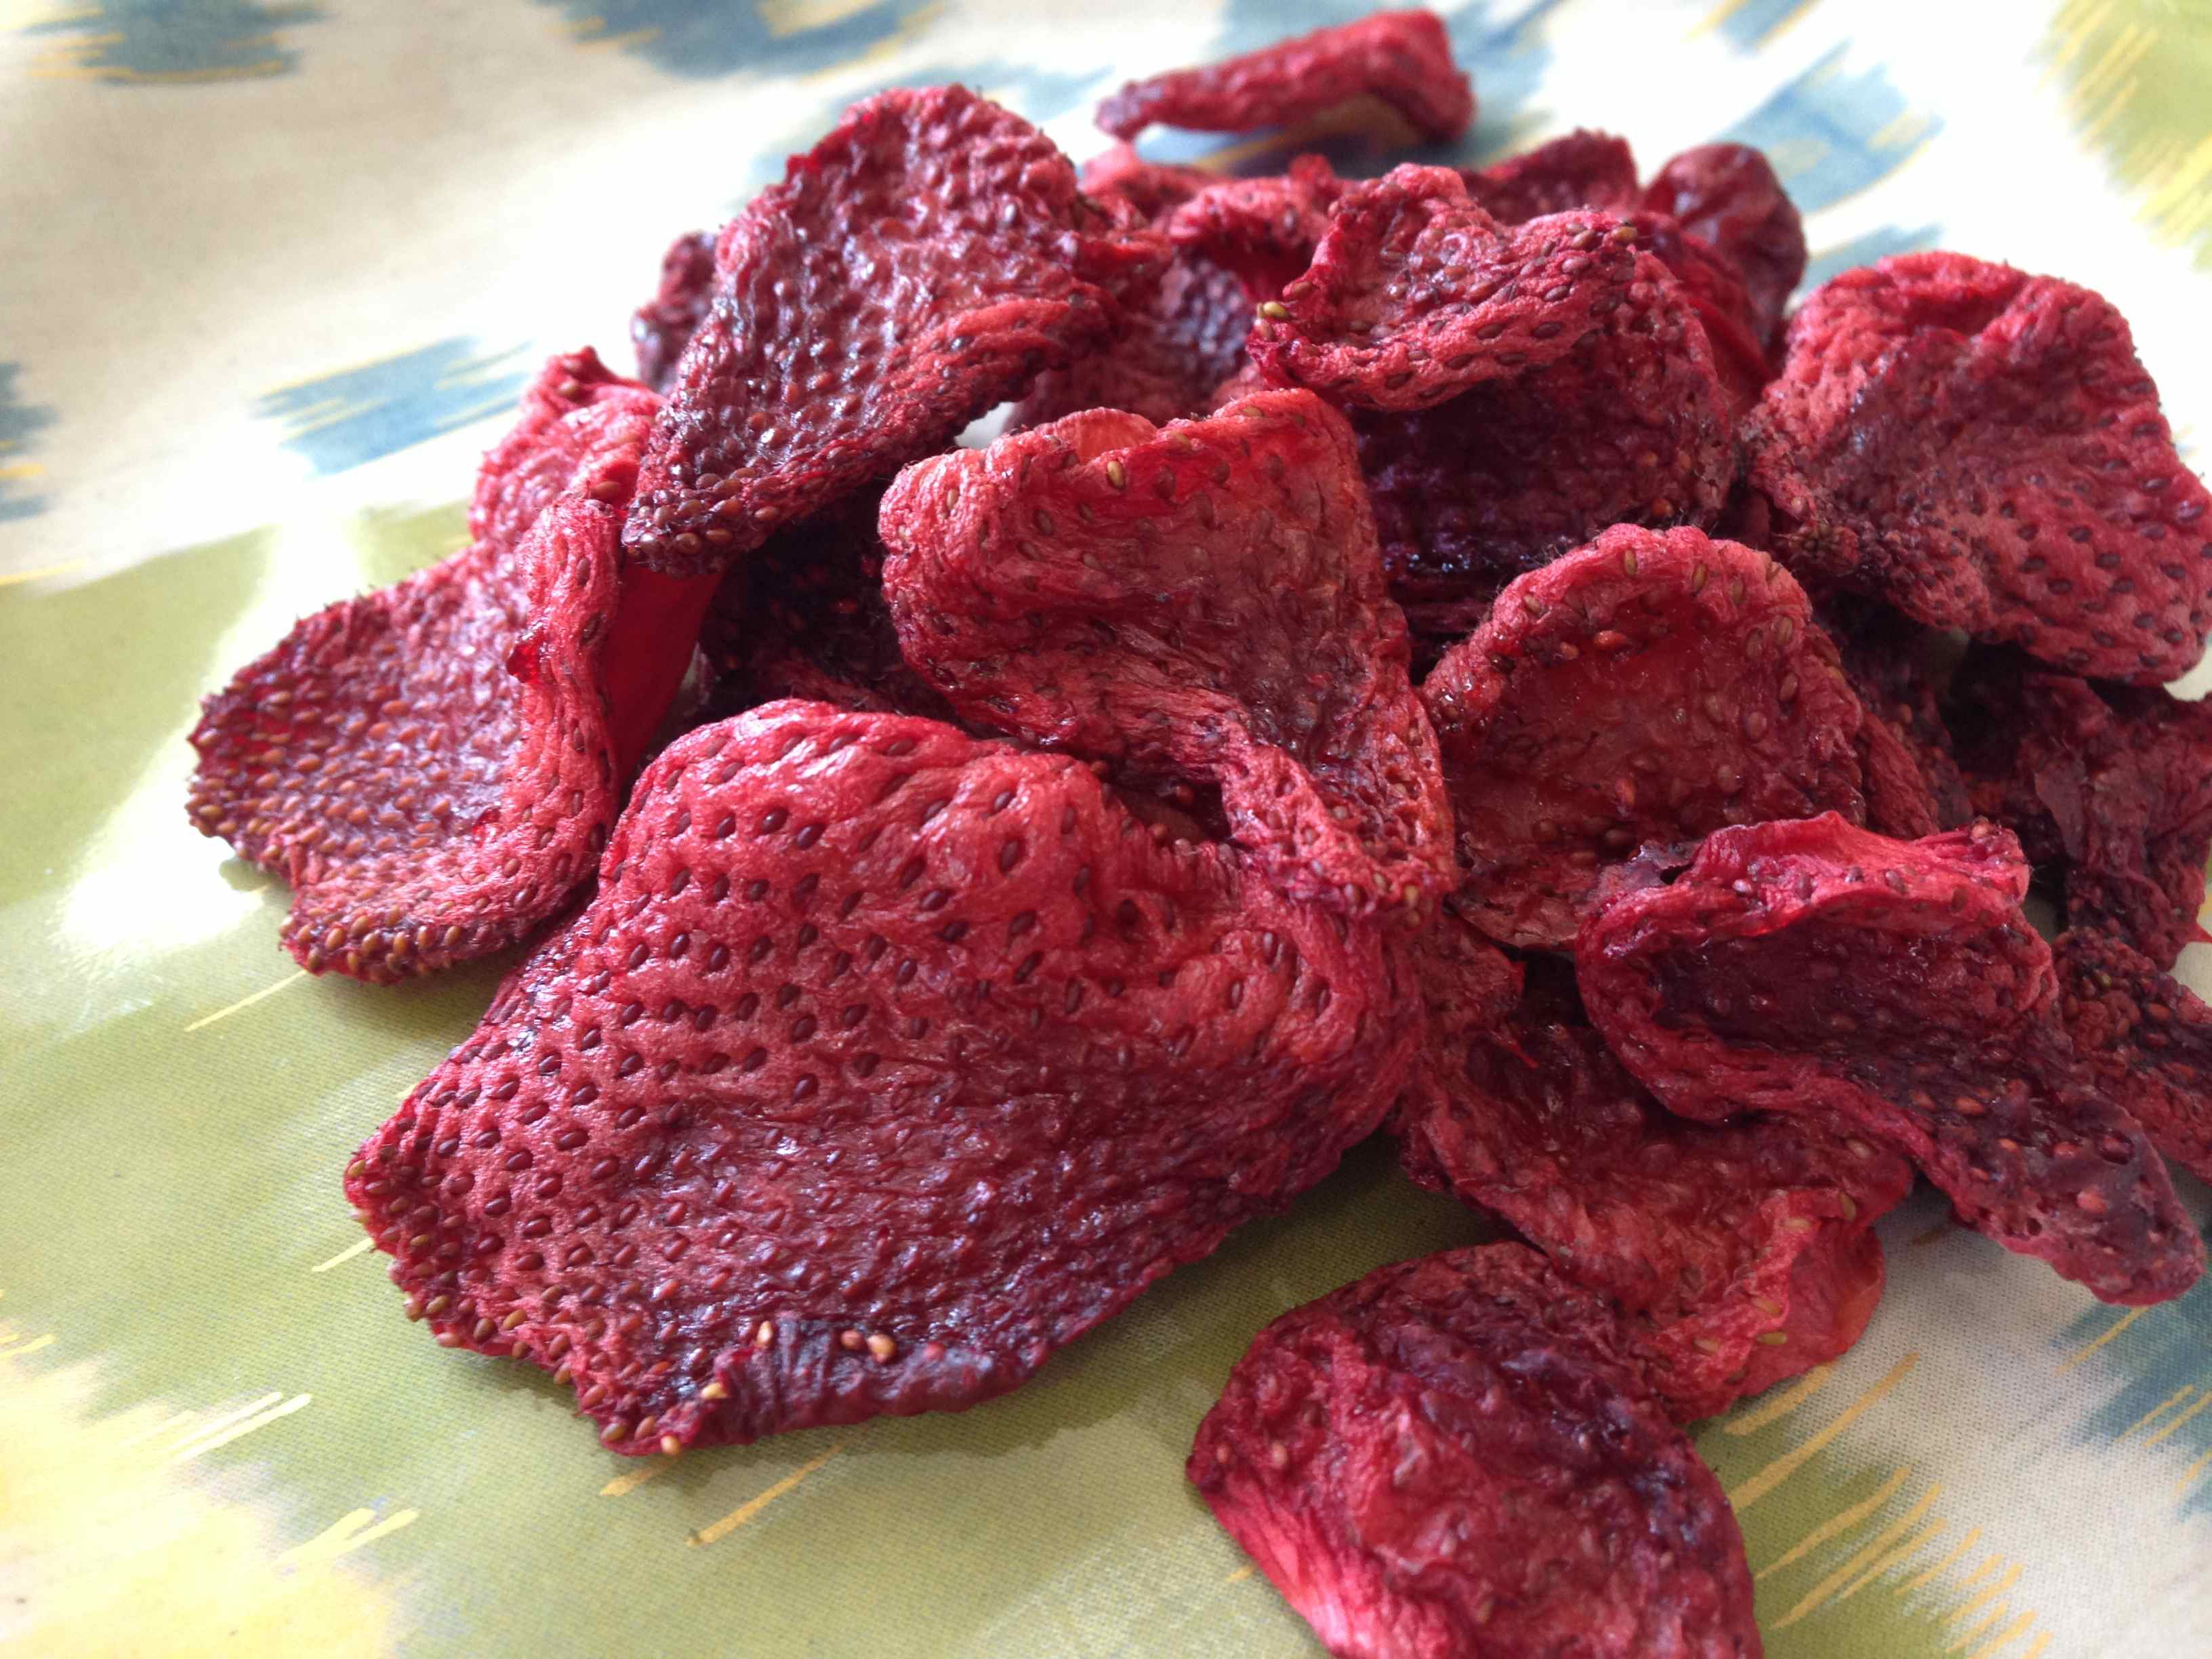 Dried Strawberries